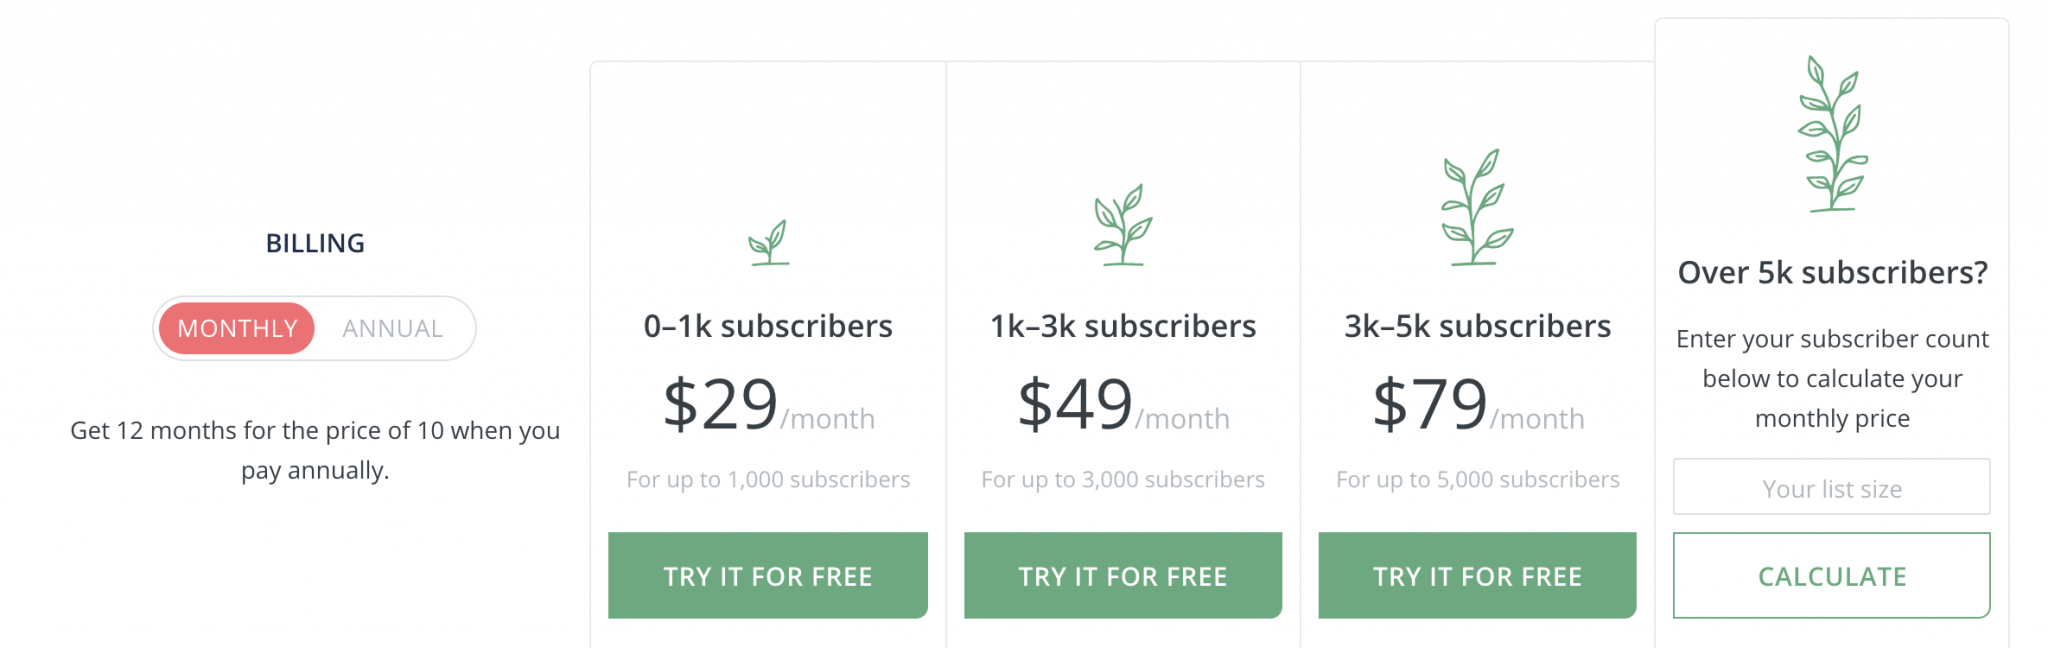 Convertkit Discount Code May 2020